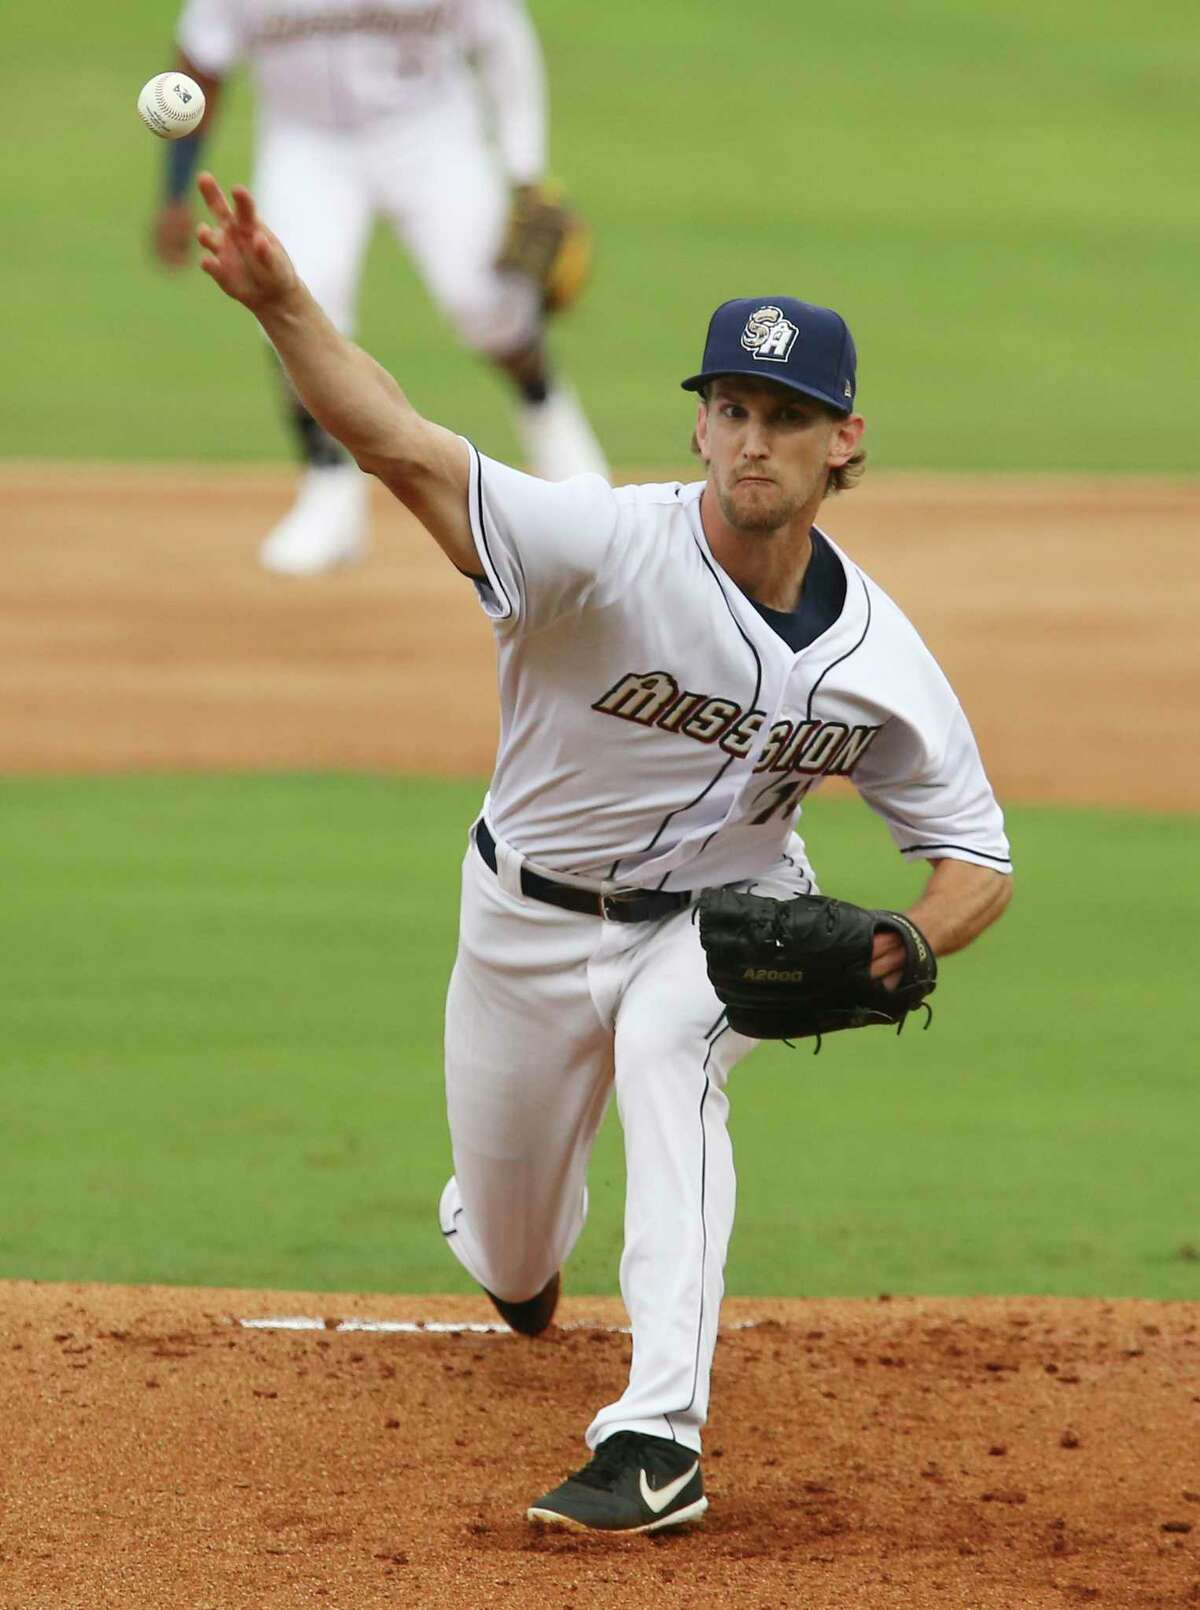 Missions pitcher Caleb Boushley (15) starts on the mound in the home opener against the Frisco Rough Riders at Wolff Stadium on Tuesday, May 18, 2021.